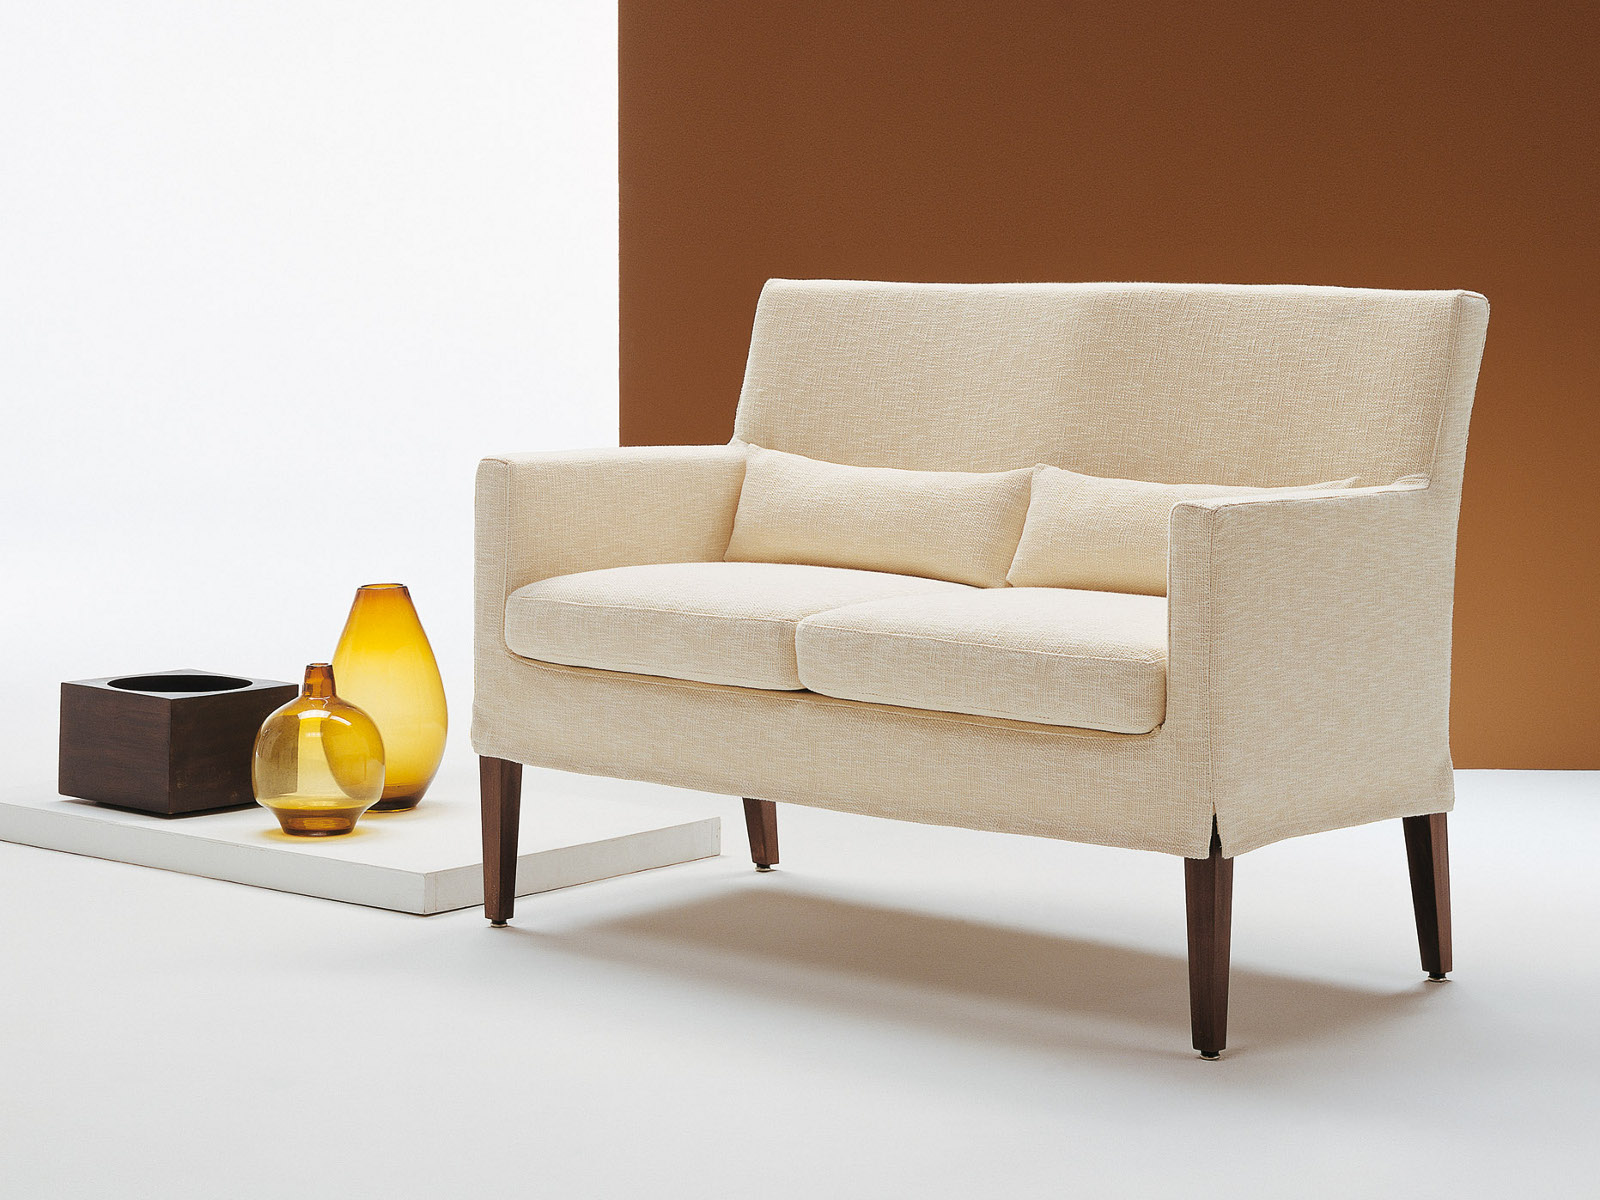 Betty small sofa by bodema design danilo bonfanti for Sofas de piel economicos